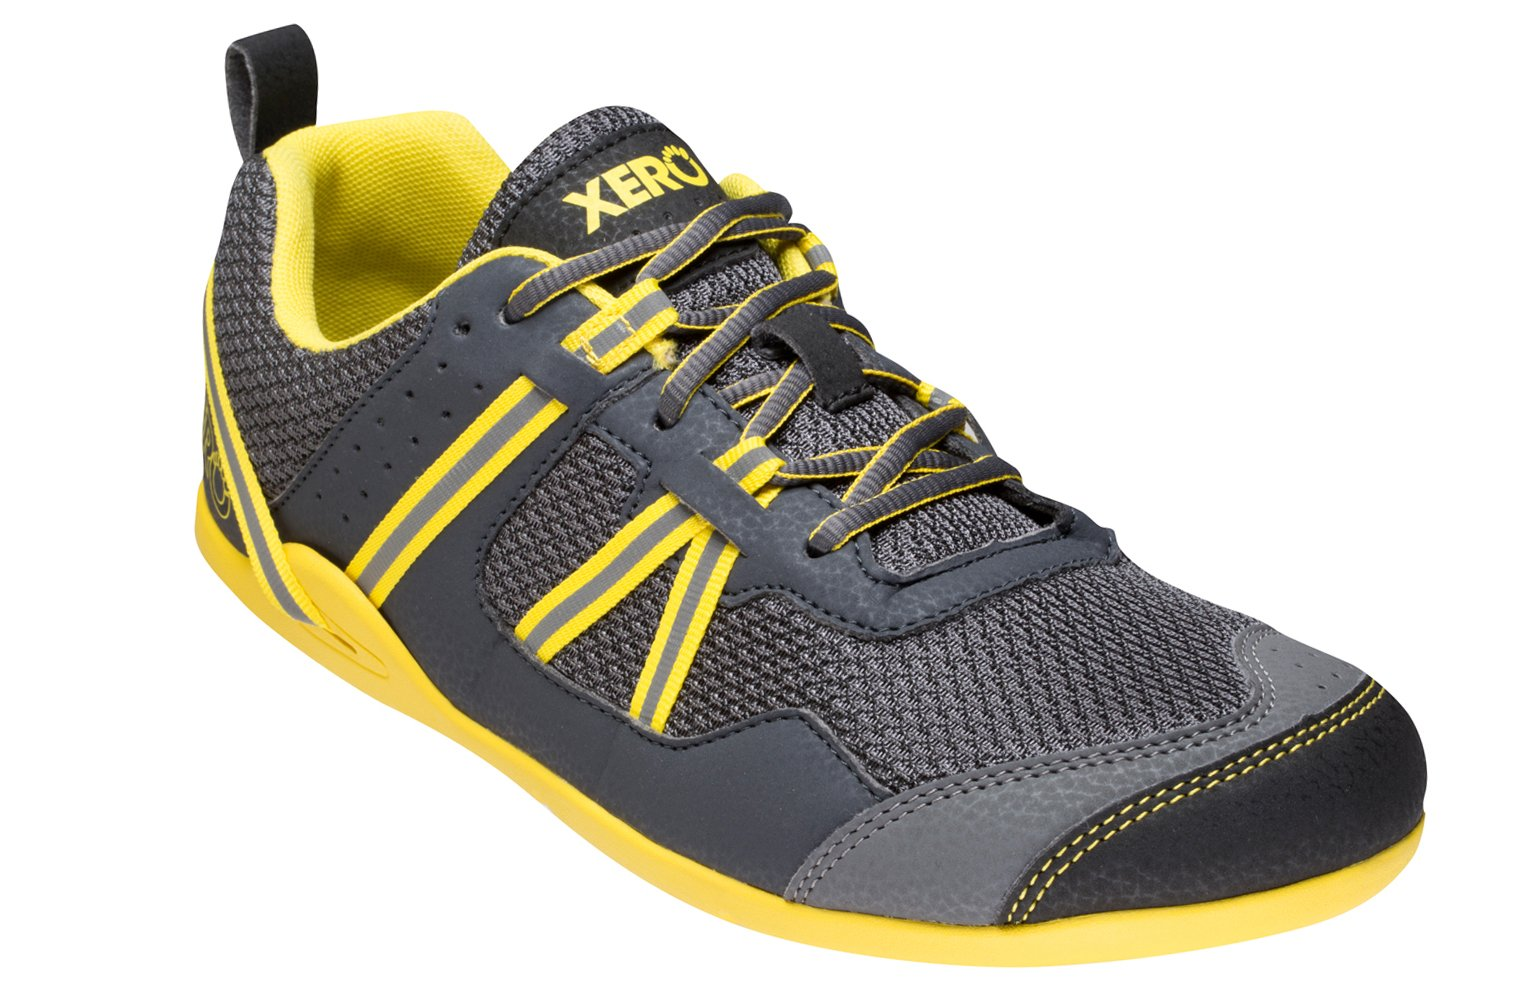 Xero Shoes Prio - Men's Minimalist Barefoot Trail and Road Running Shoe - Fitness, Athletic Zero Drop Sneaker - True Yellow by Xero Shoes (Image #1)